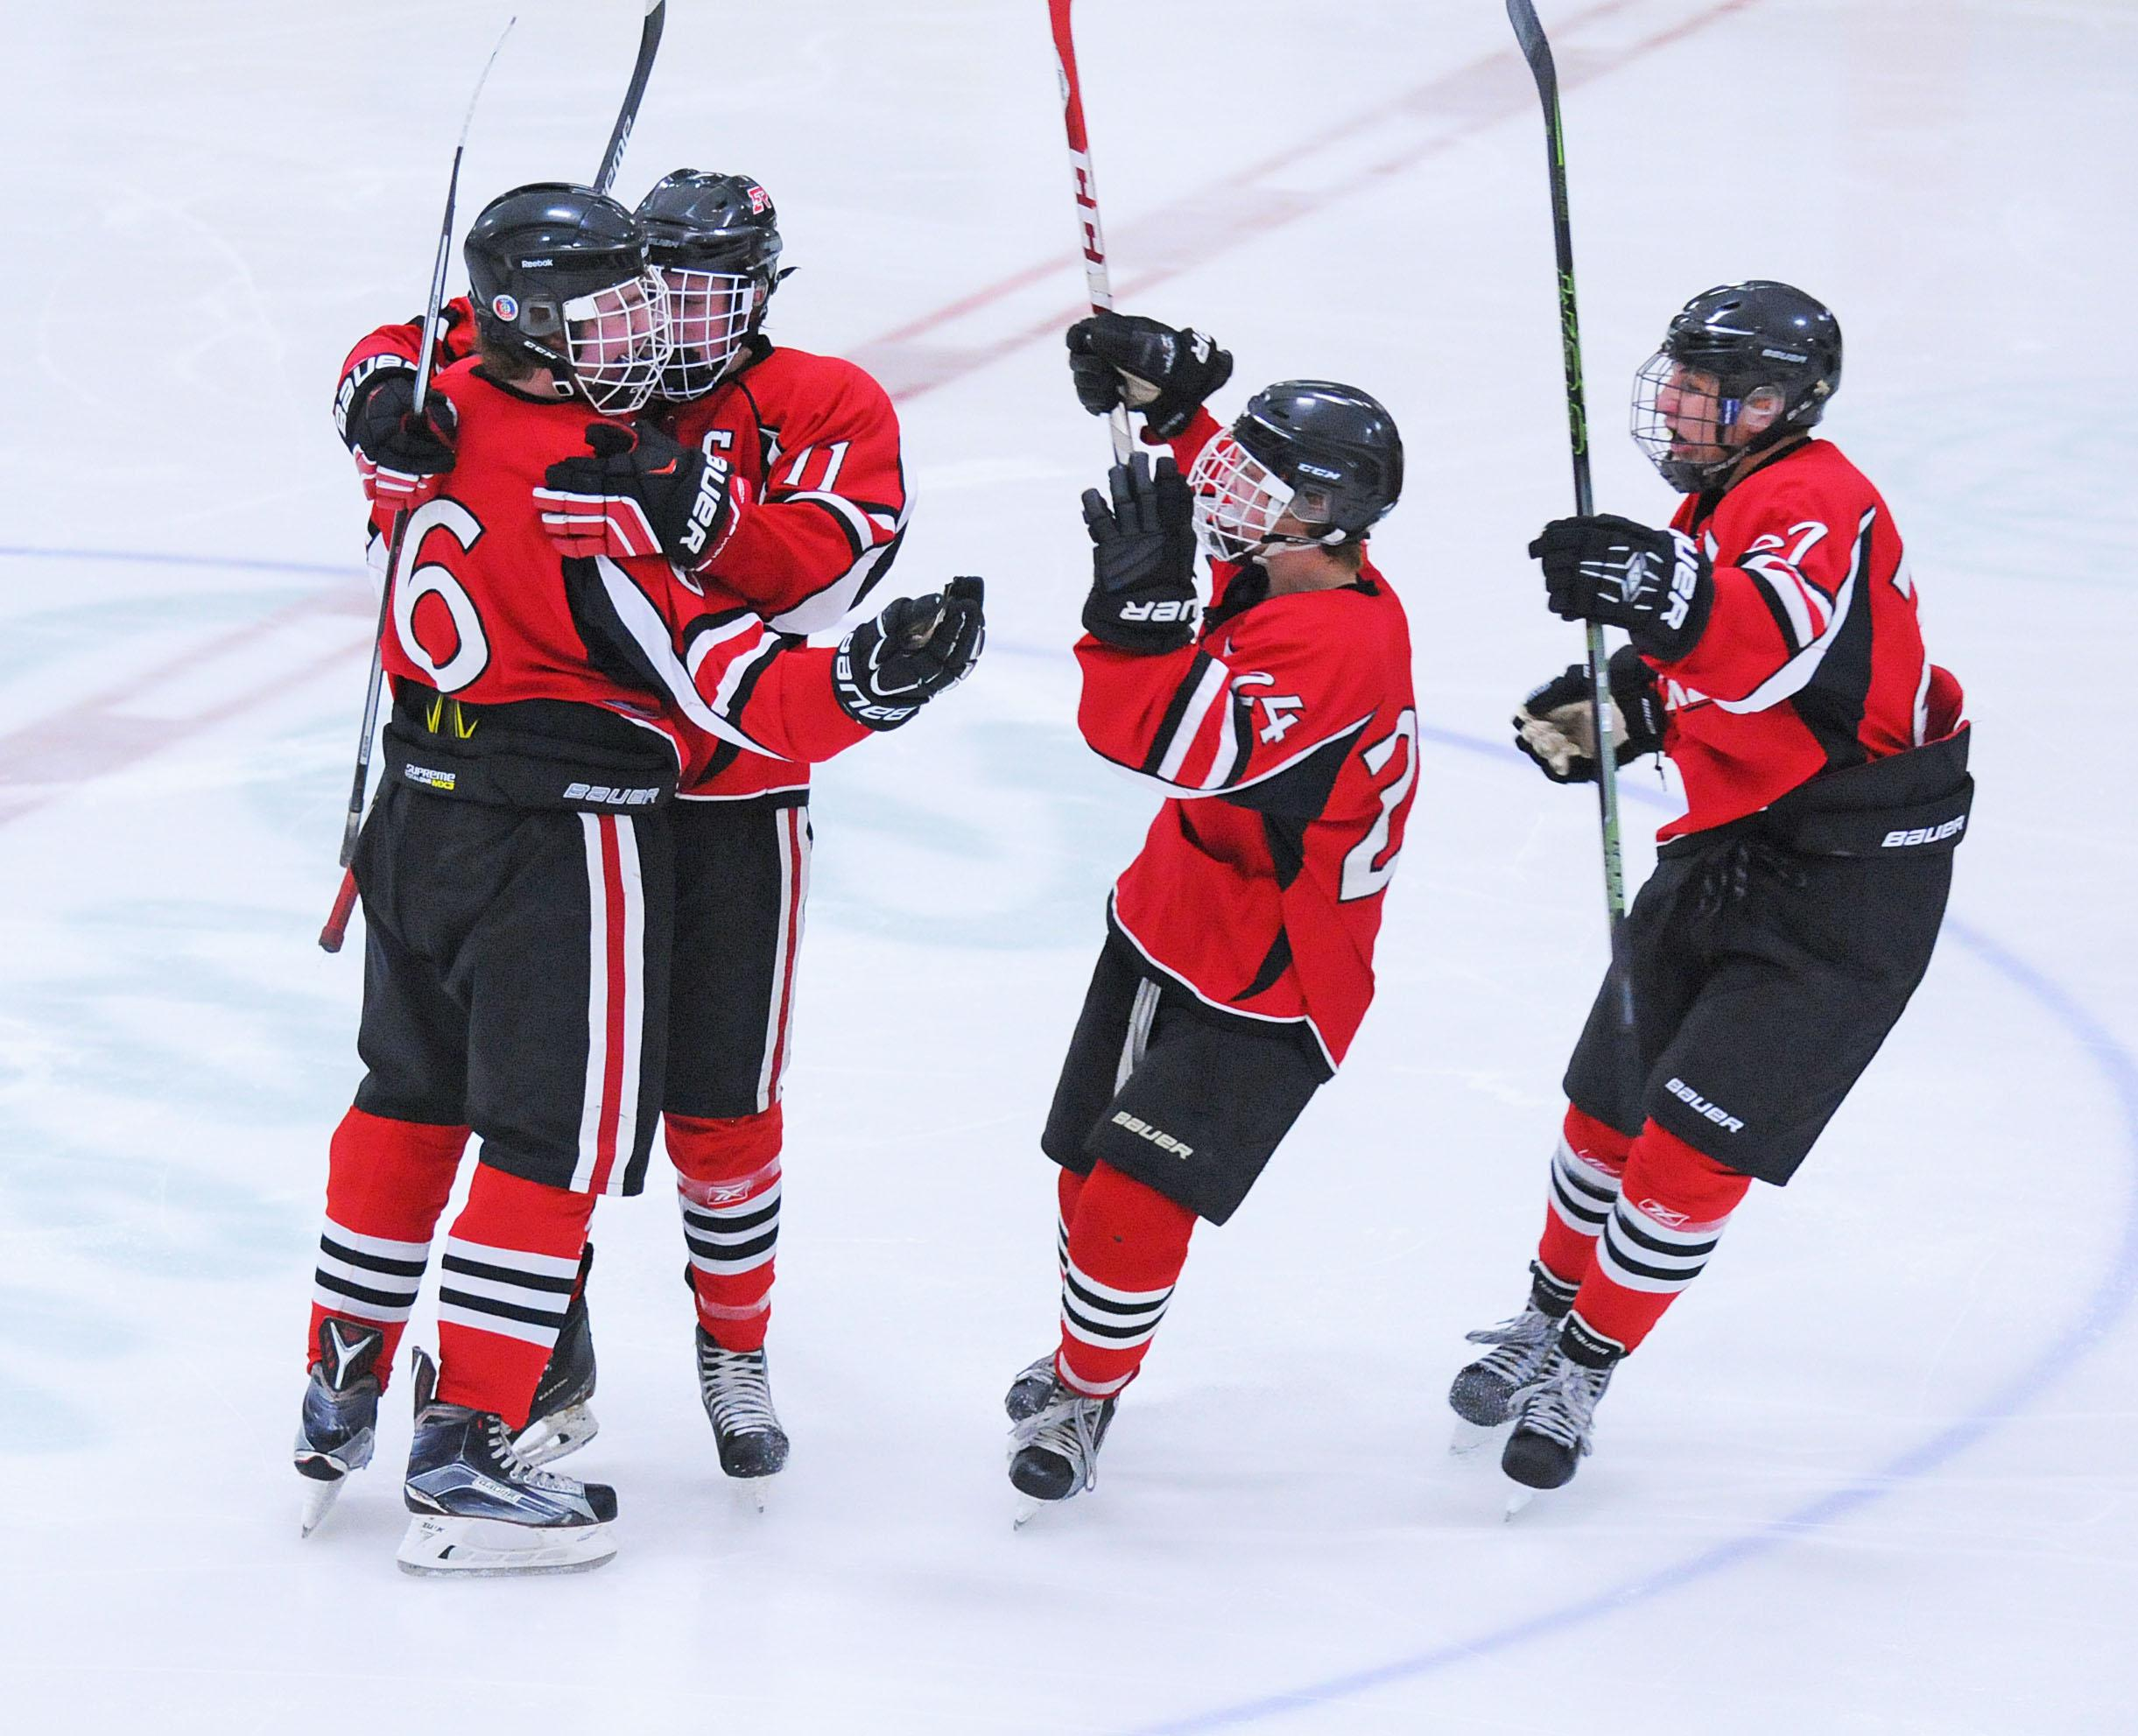 MN H.S.: Top Games - Elk River Visits Centennial In Northwest Suburban Conference Clash